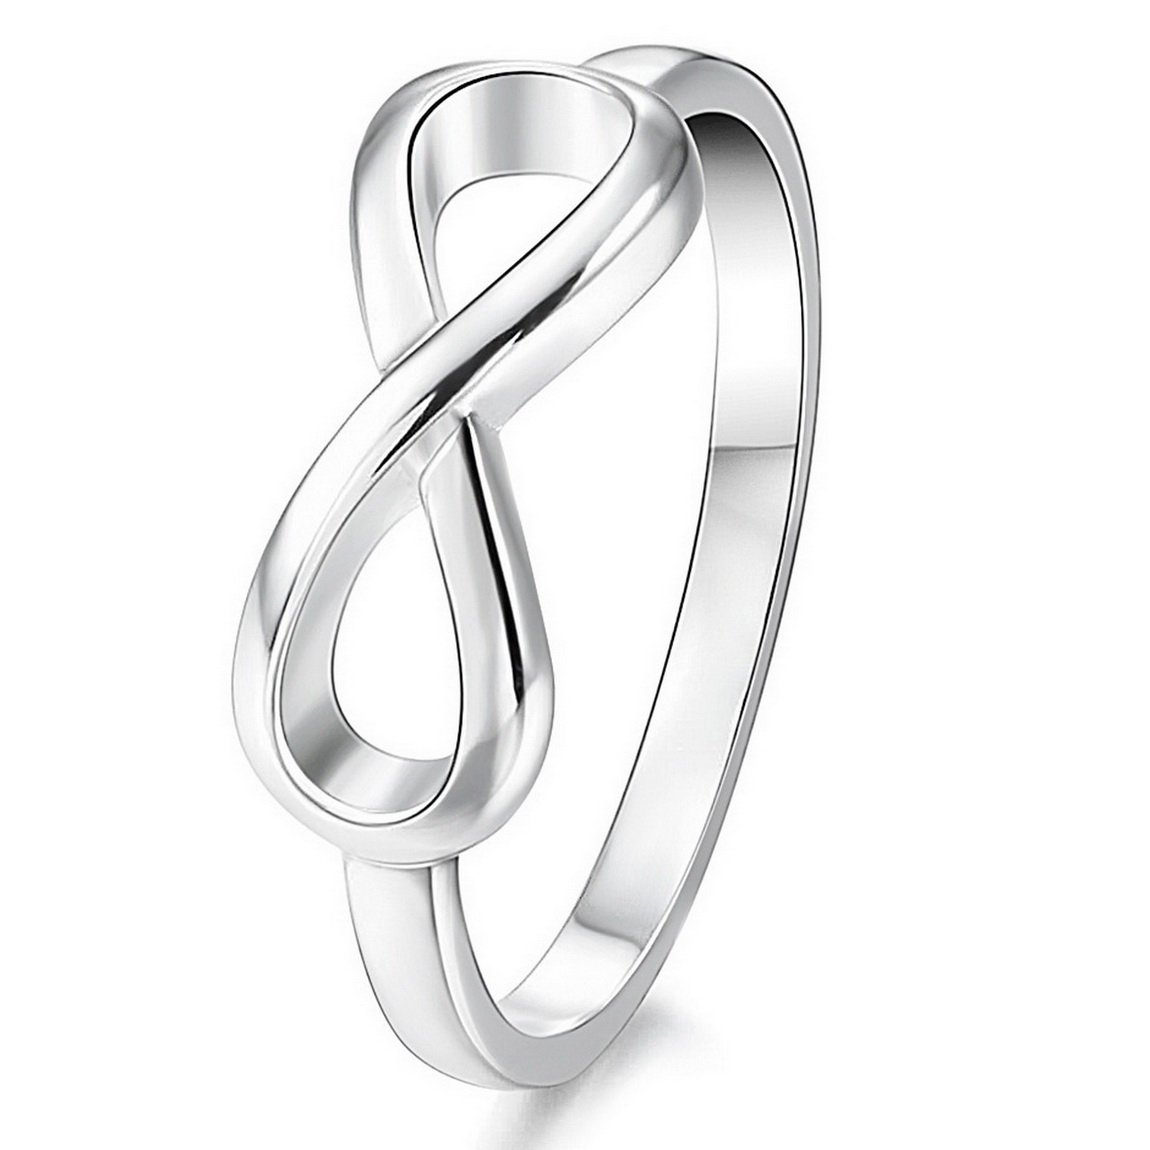 INBLUE Women's 925 Sterling Silver Ring Silver Tone Infinity Symbol Wedding Band Size9